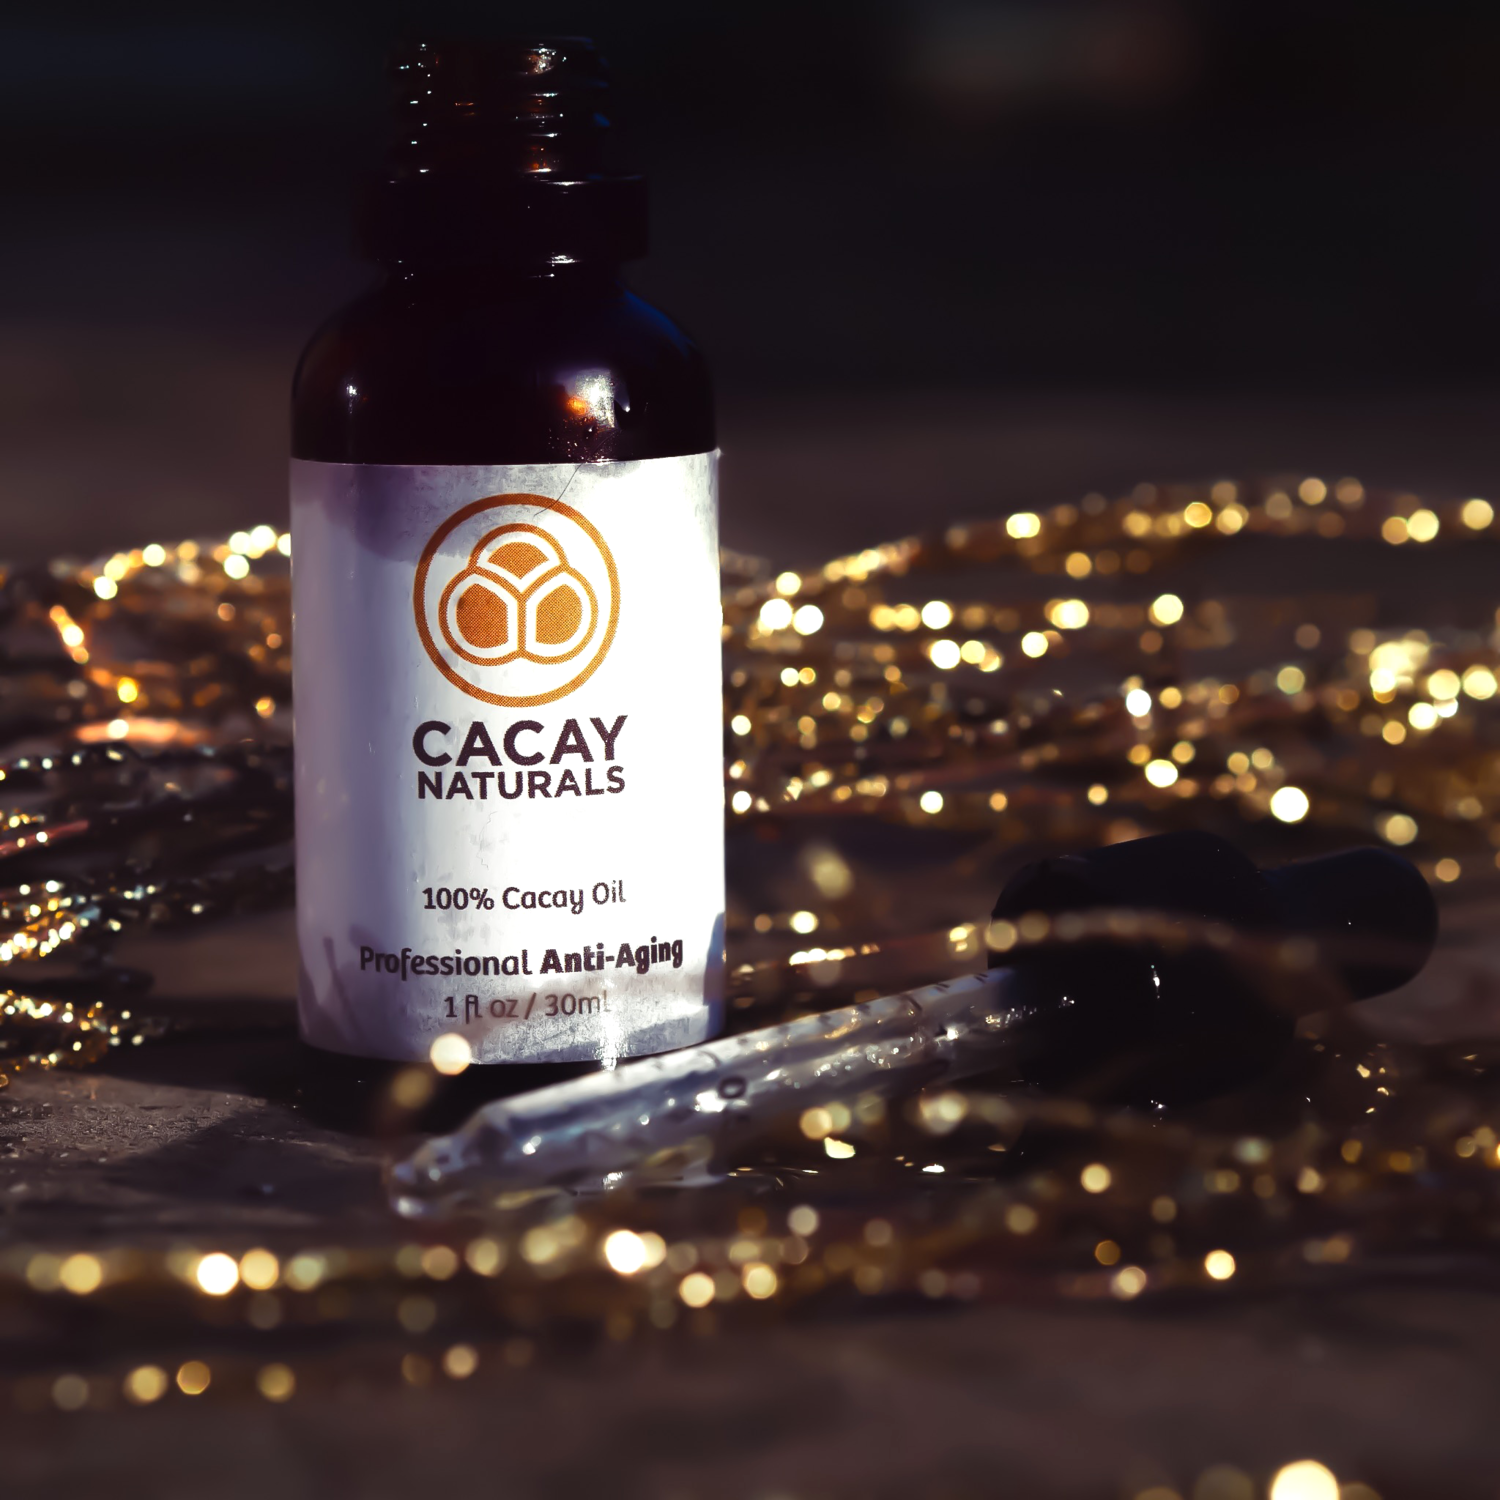 cacay oil, essential oils, beauty products, skincare, london fashion girl, laura blair